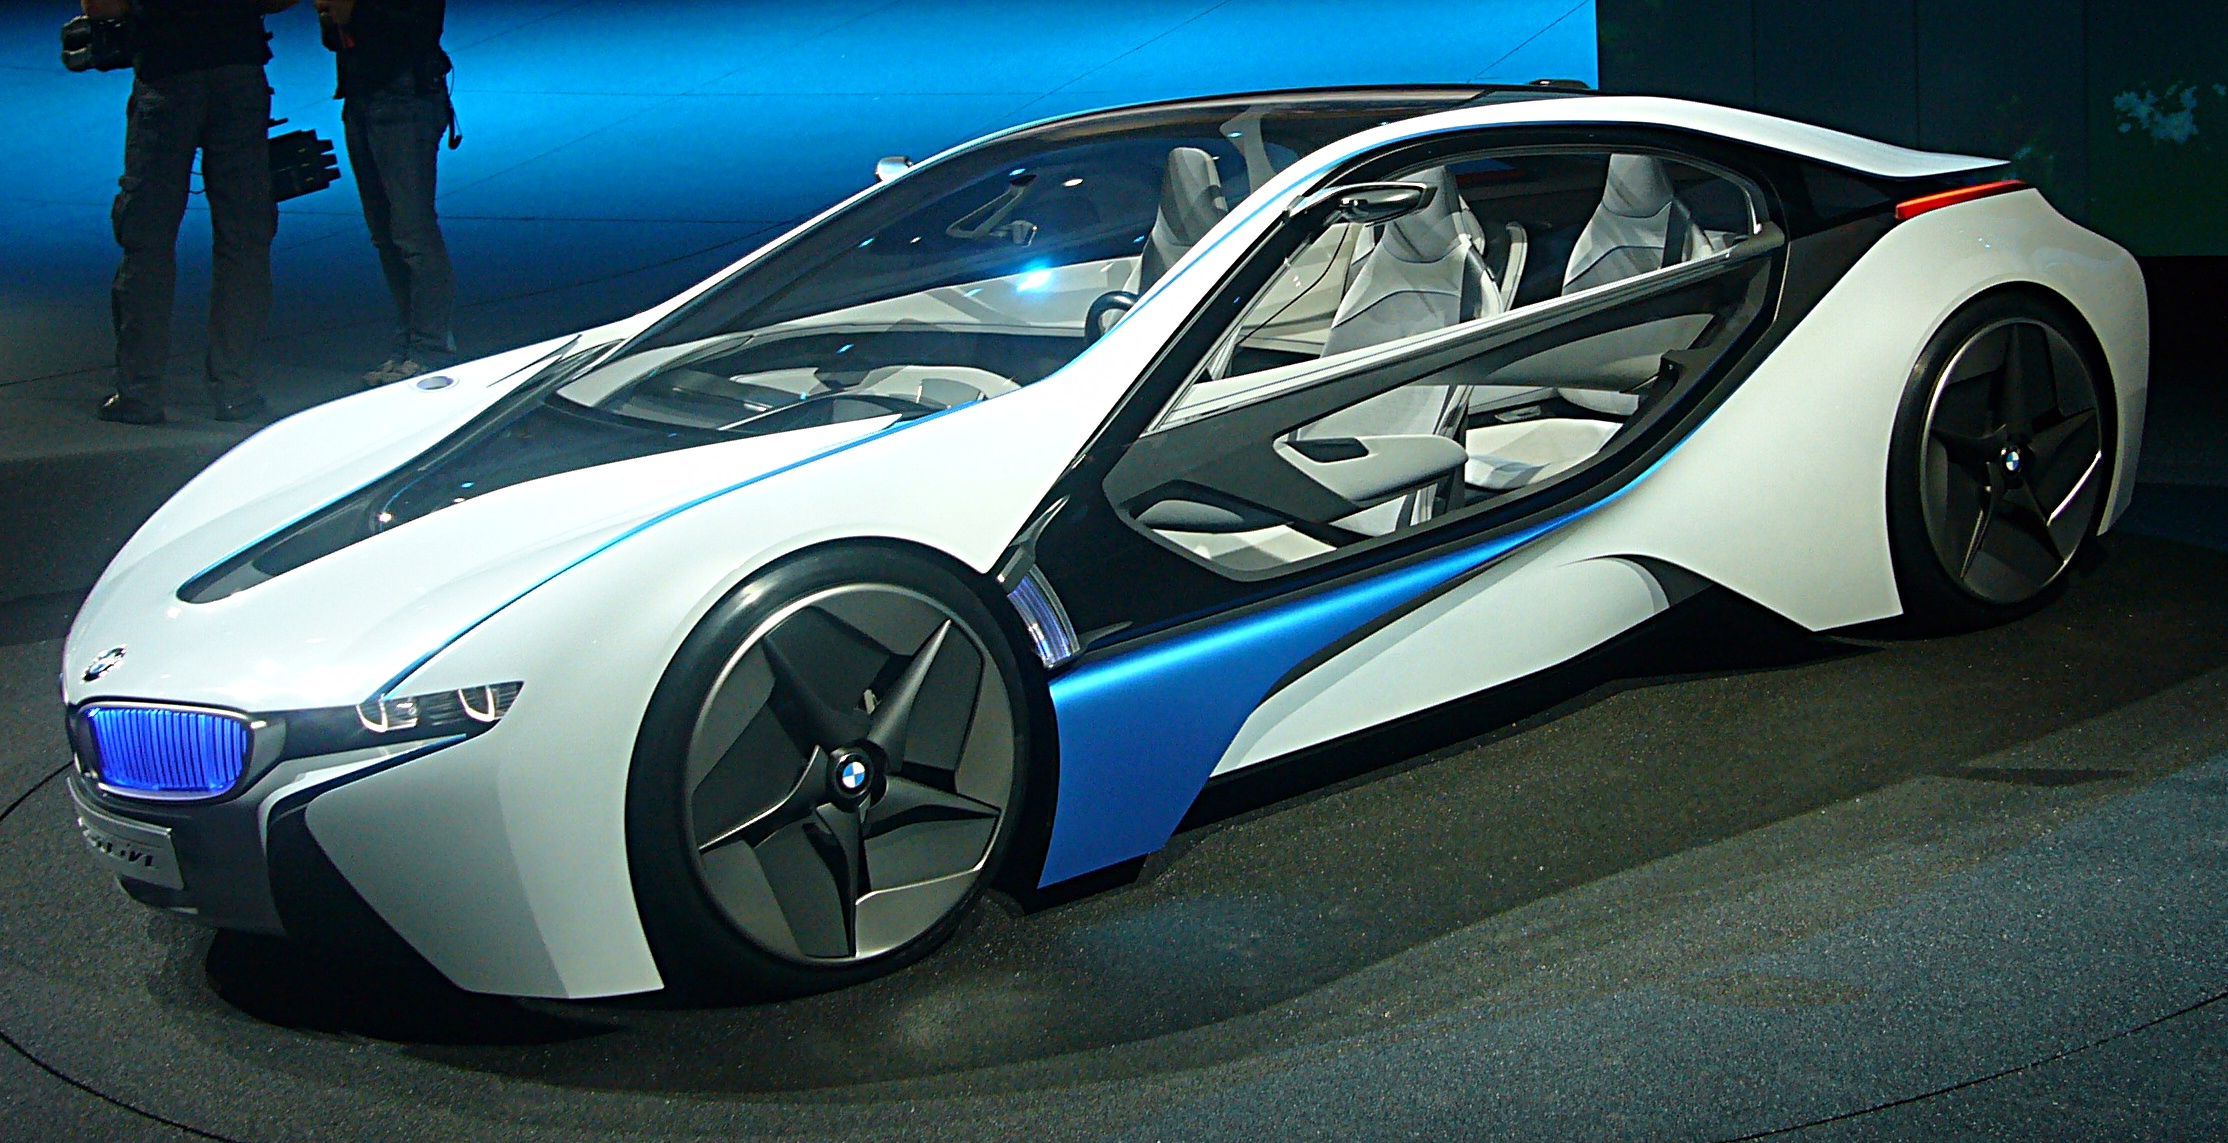 bmw vision efficient dynamics car interior design. Black Bedroom Furniture Sets. Home Design Ideas